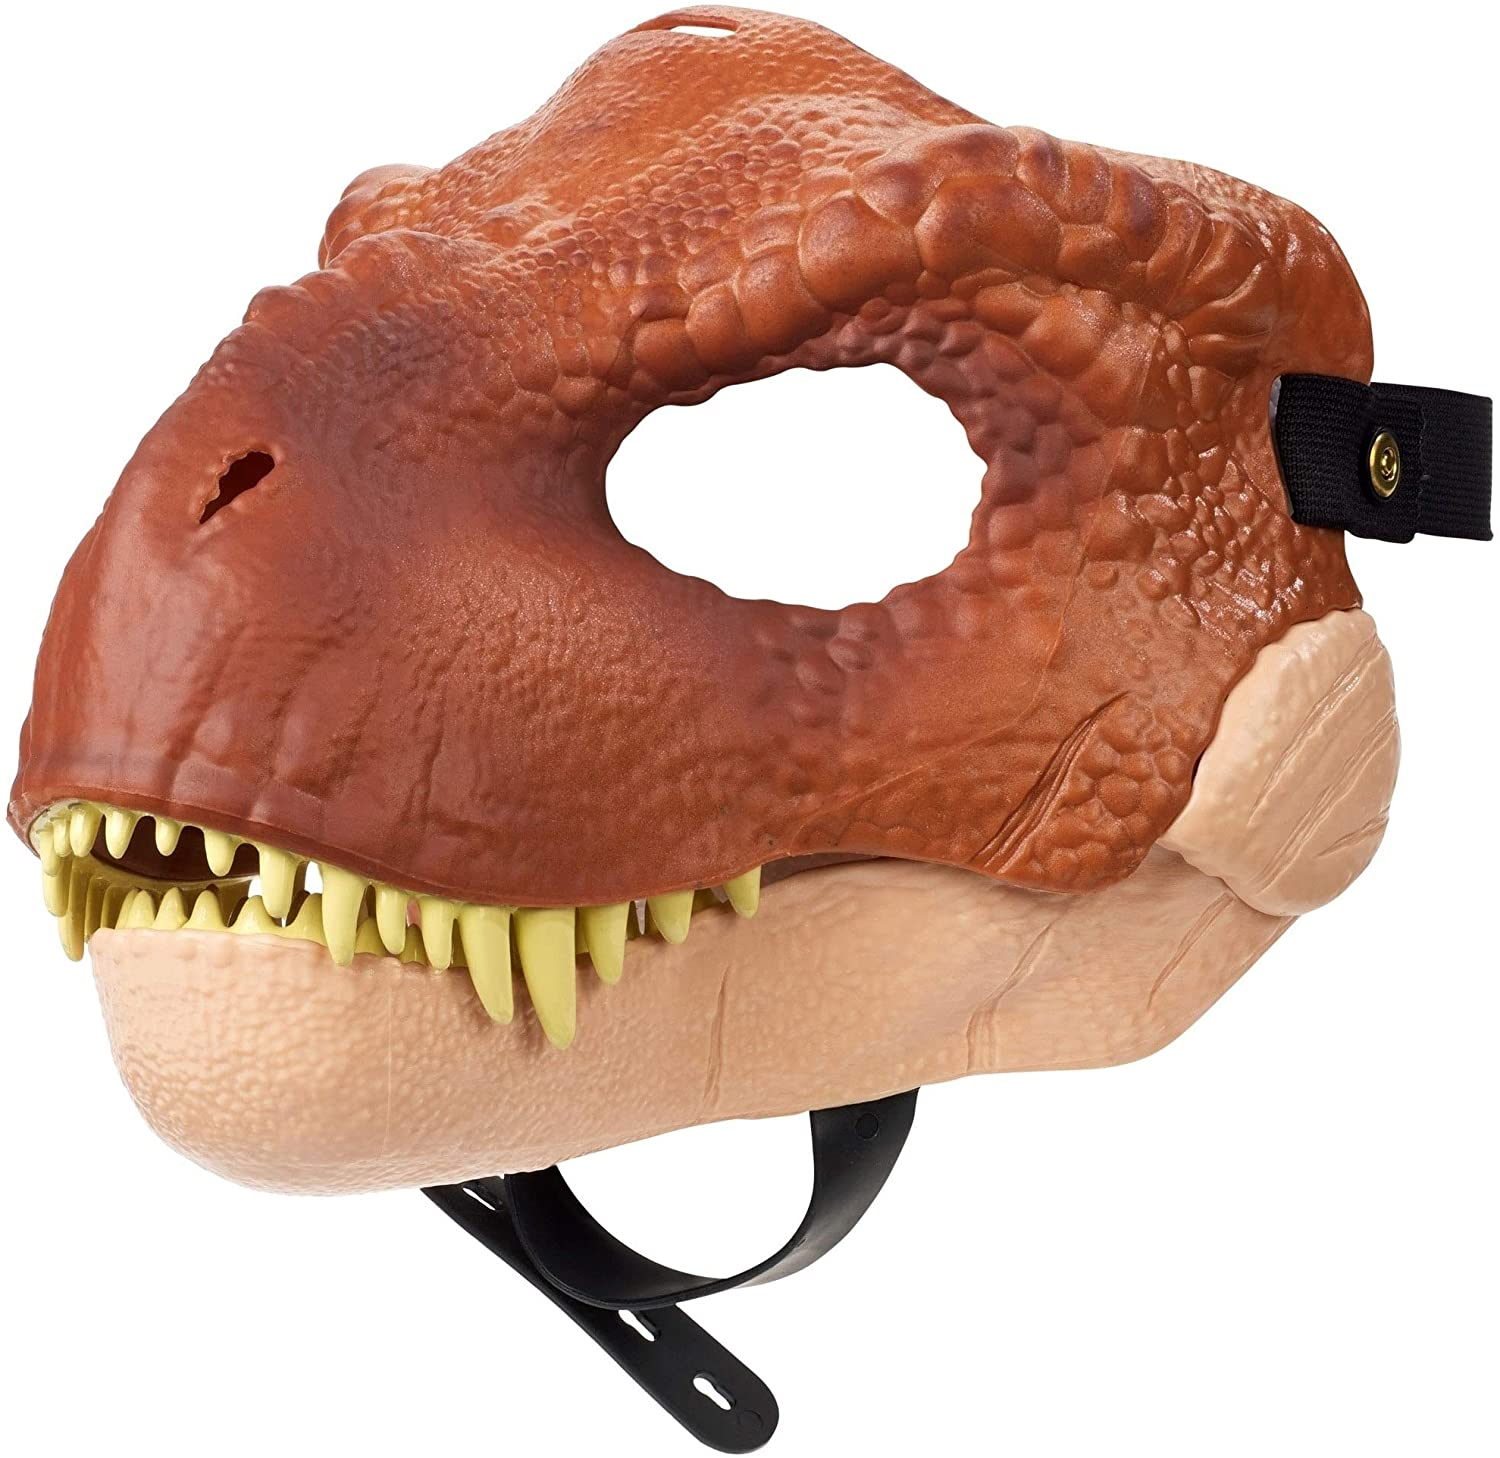 JURASSIC WORLD TYRANNOSAURUS 5 popular REX Mask Limited time for free shipping